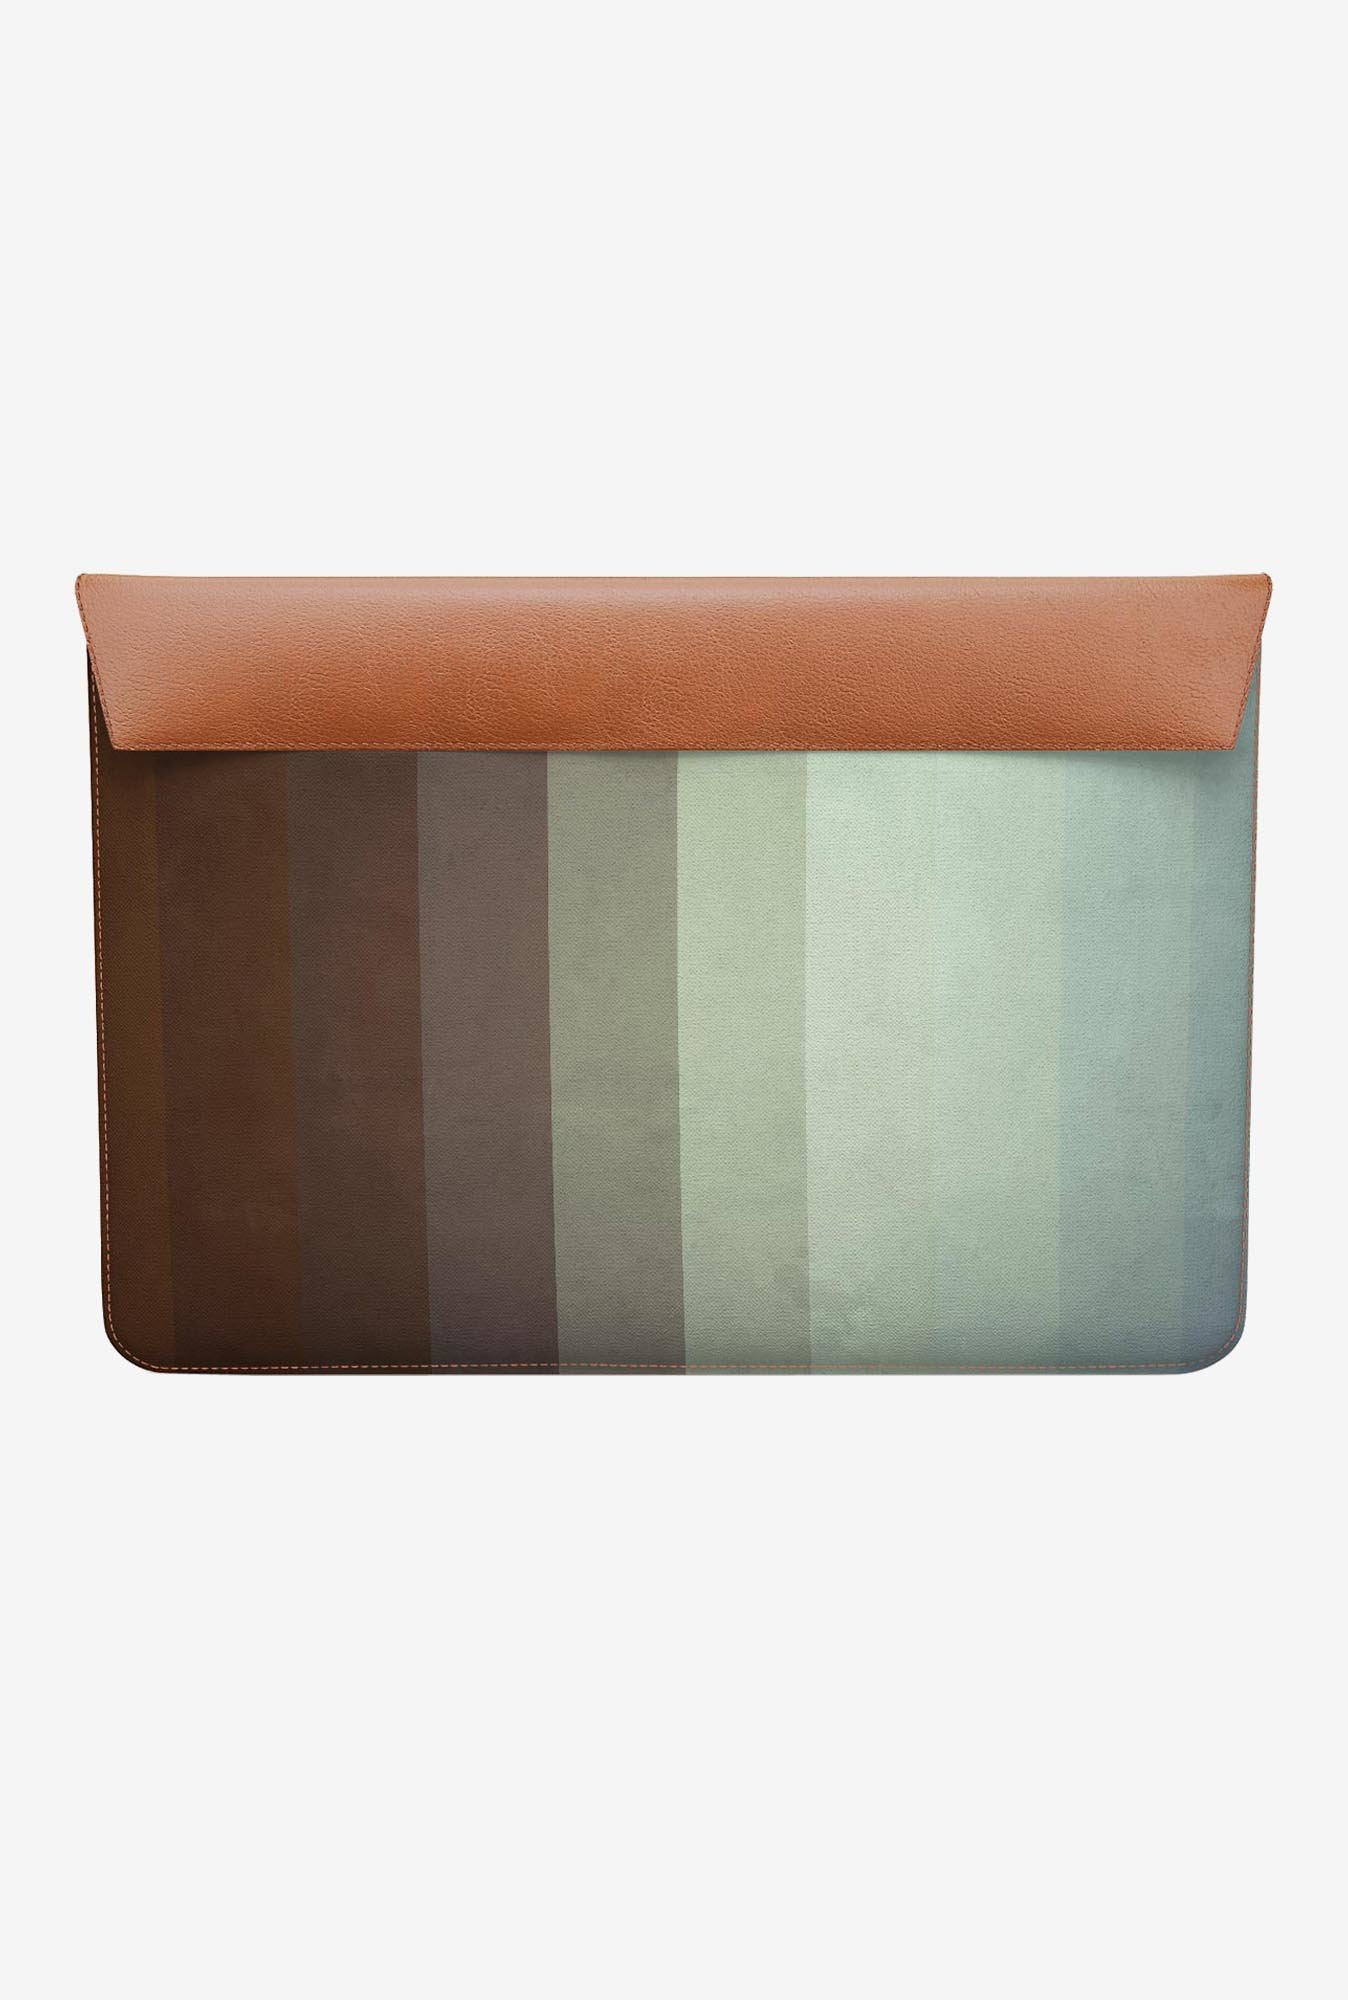 "DailyObjects No Xmys Myrycl Macbook Air 11"" Envelope Sleeve"